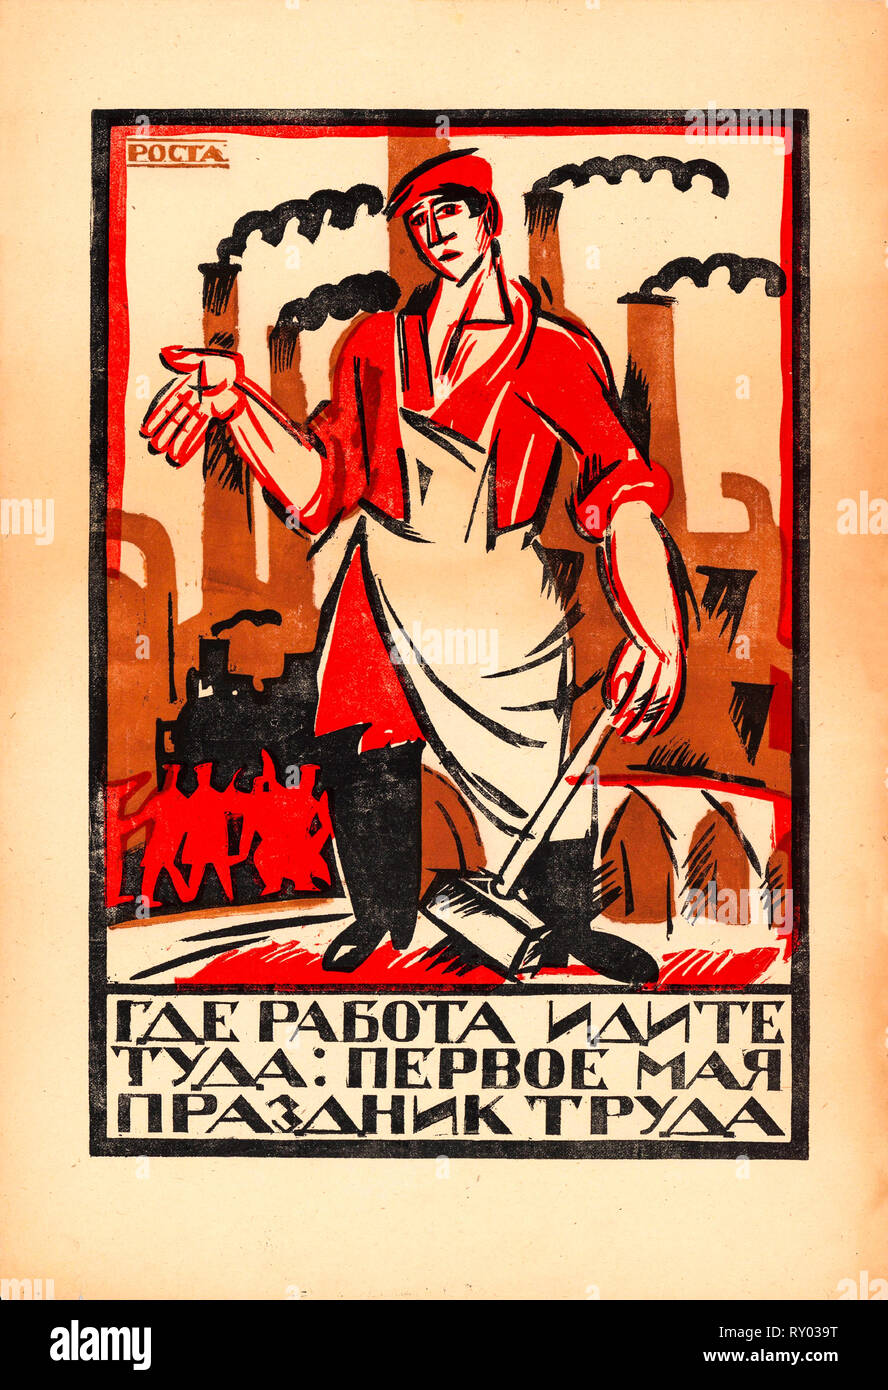 Soviet propaganda poster, Where is work, I go there: May Day - Labour Day, ROSTA, 1920 - Stock Image